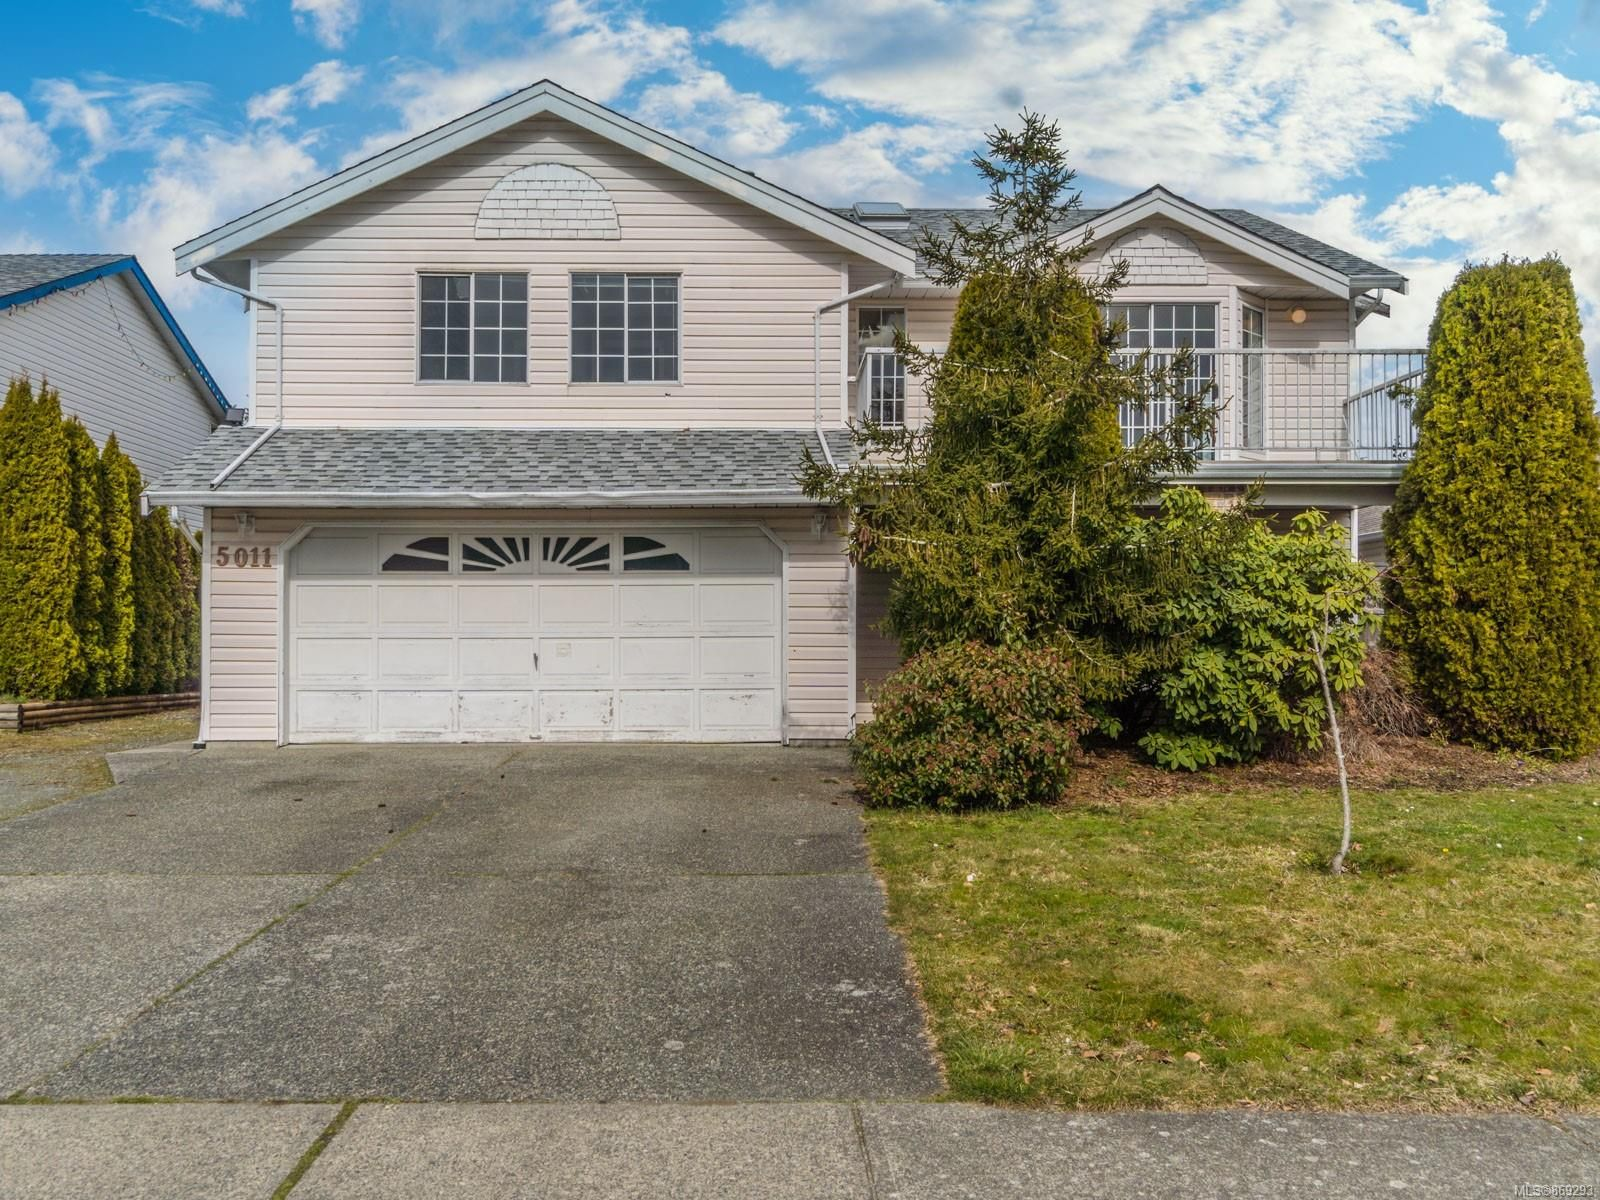 Main Photo: 5011 Rheanna Pl in : Na Pleasant Valley House for sale (Nanaimo)  : MLS®# 869293